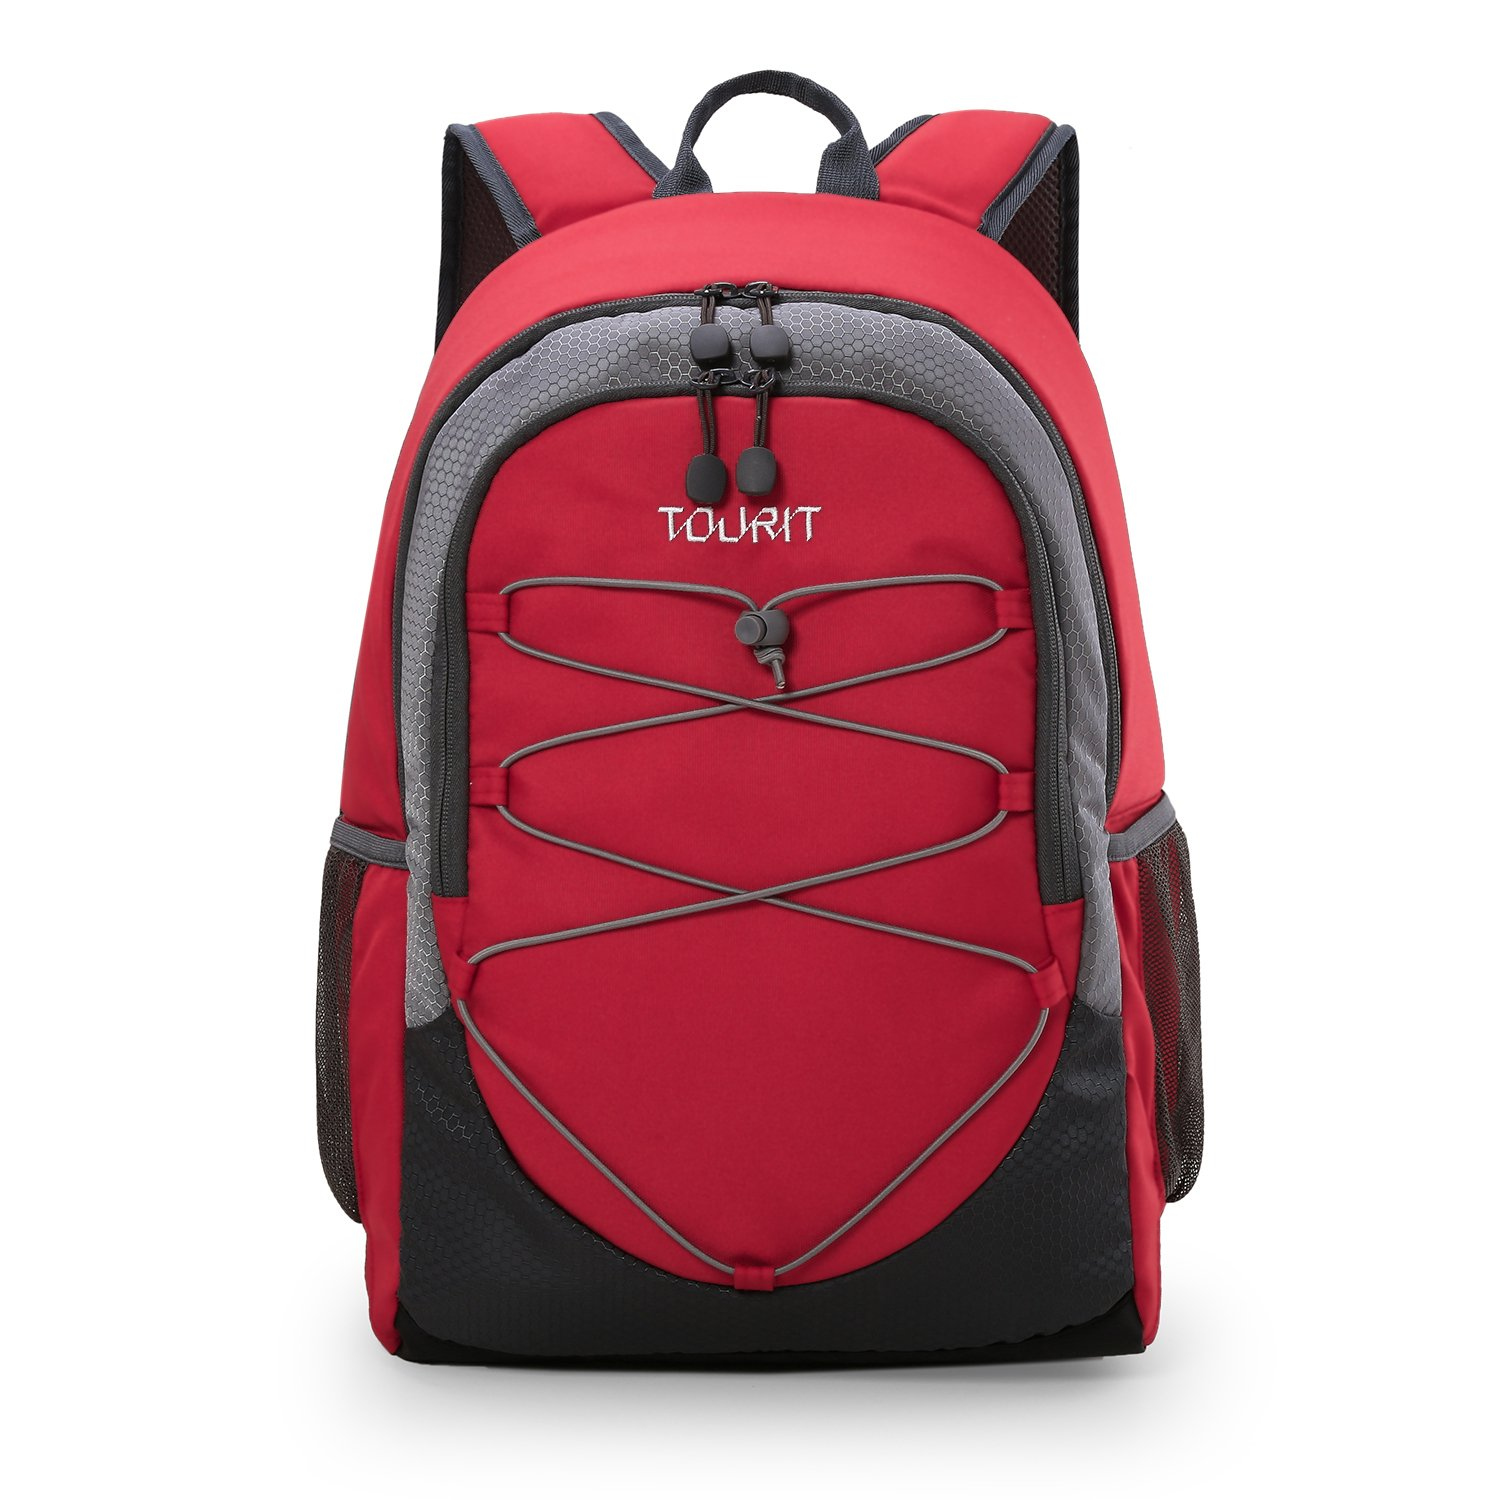 TOURIT Insulated Cooler Backpack Soft Cooler Lightweight Backpack Cooler Lunches, Picnics, Hiking, Beach, Park Day Trips, 28 Cans Park or Day Trips